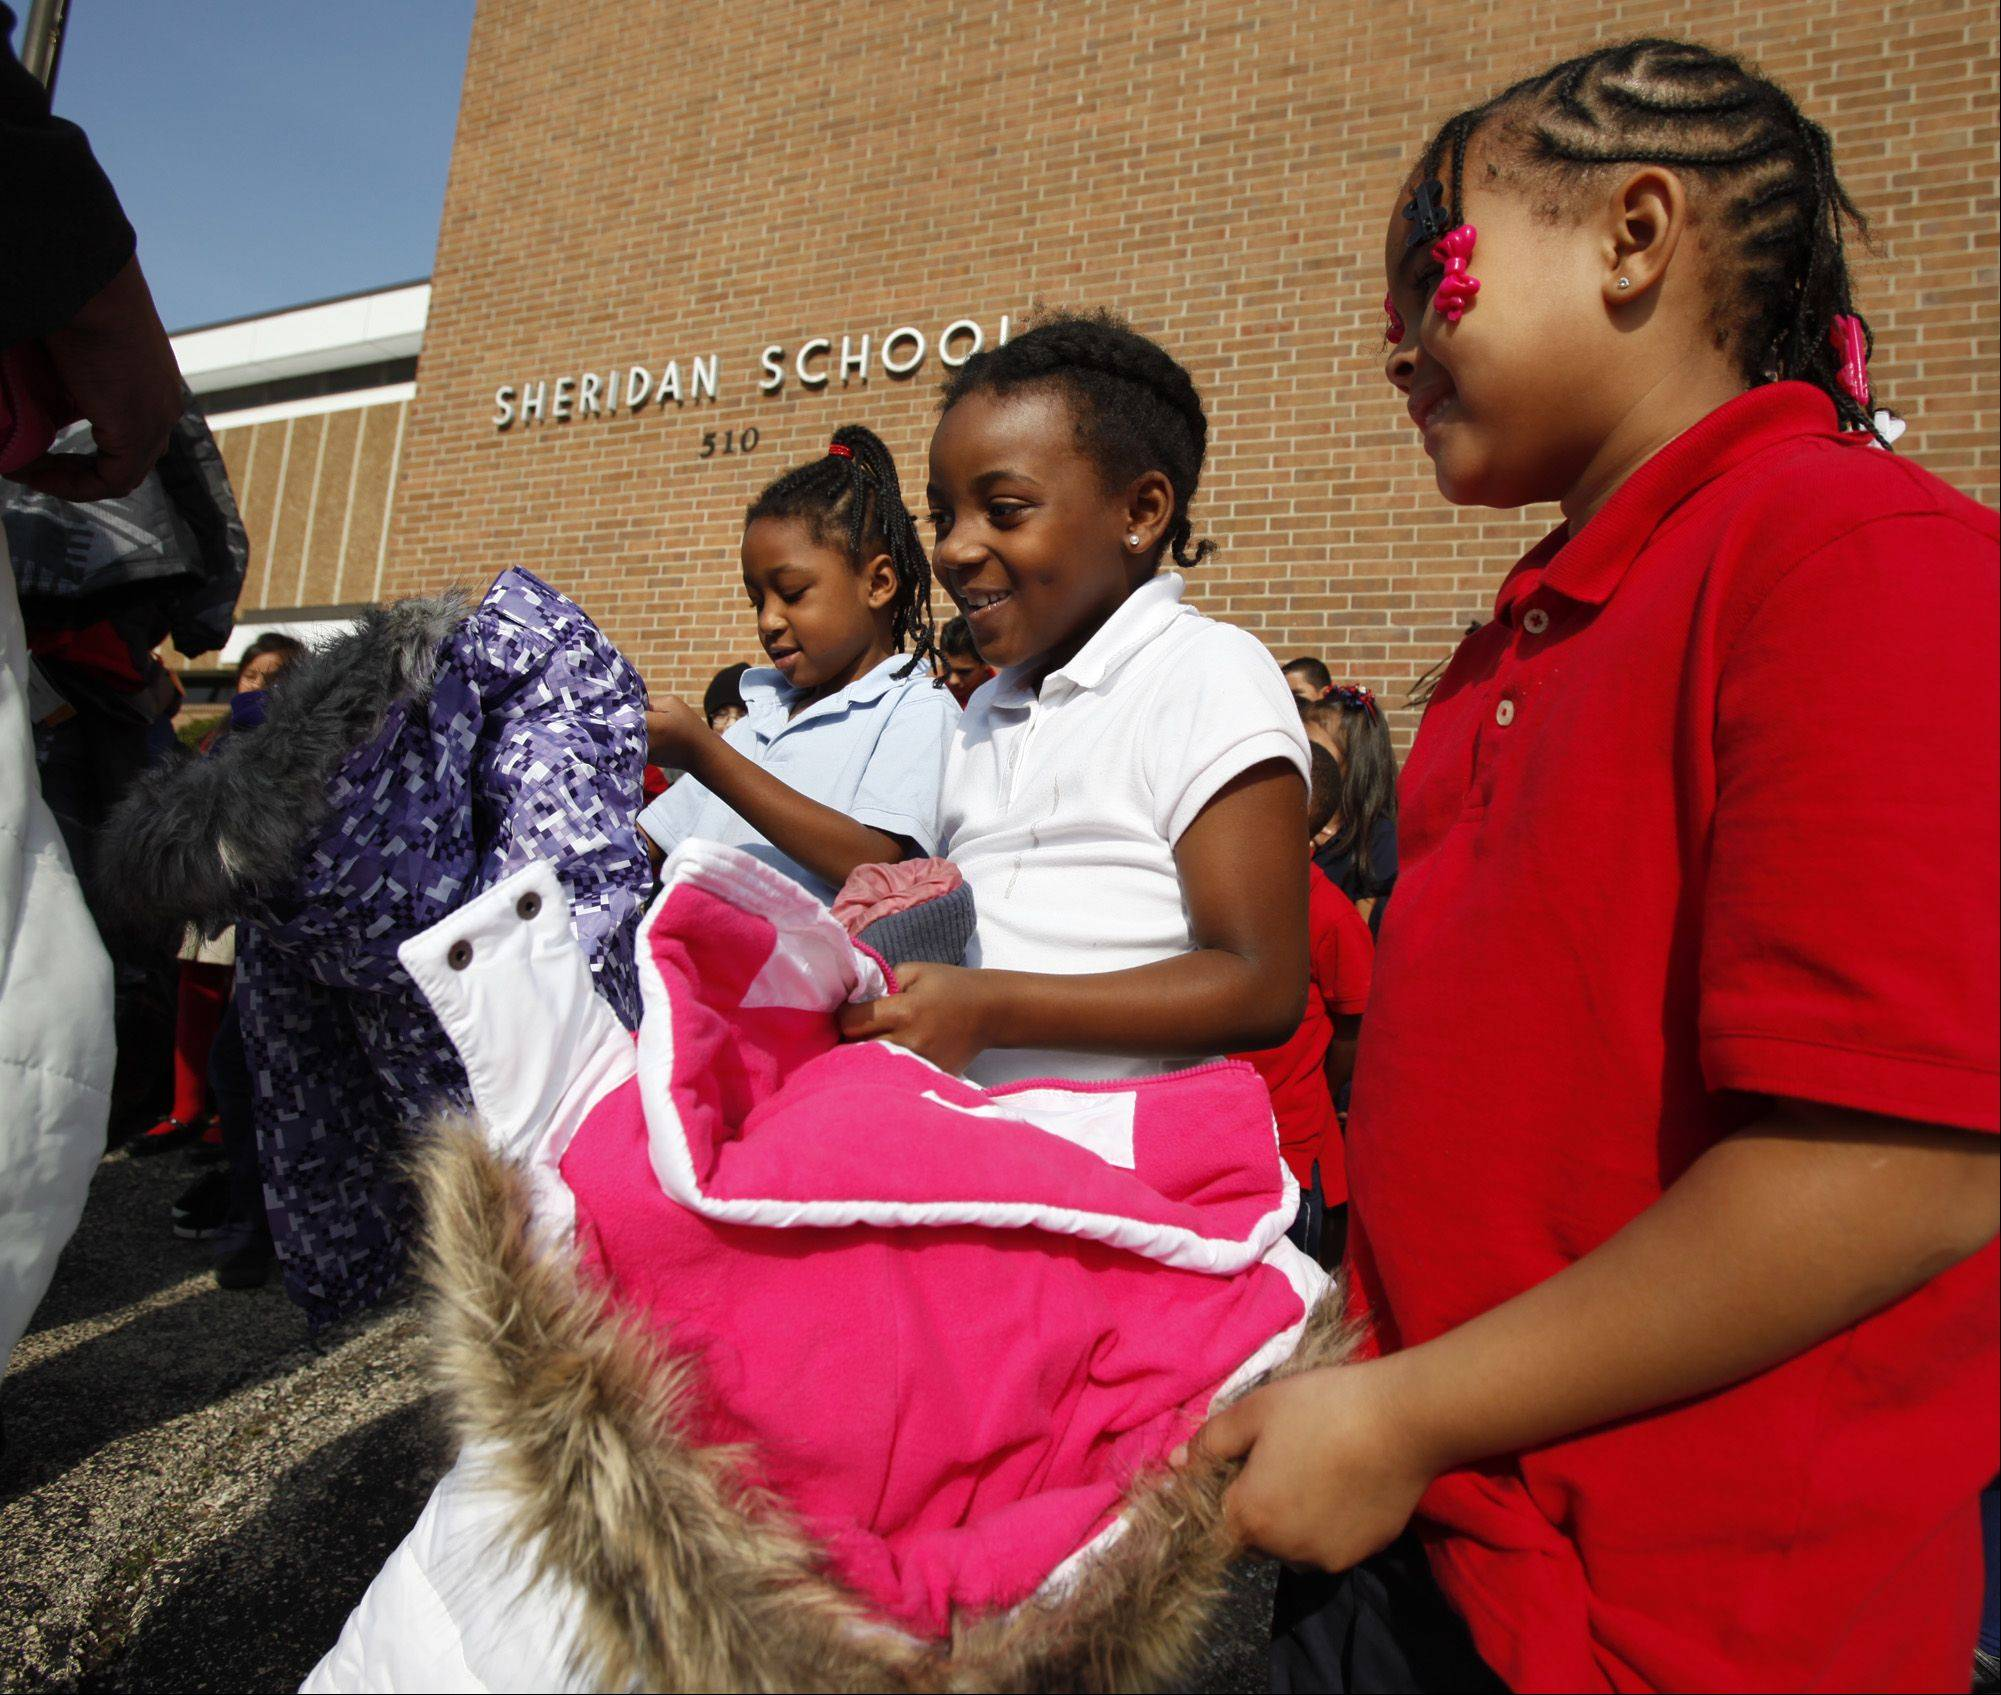 Sheridan Elementary first-graders Taliyah Chandler, left, Chanell Walker and Tamya Clay check out their new winter coats outside the school Wednesday in Elgin.